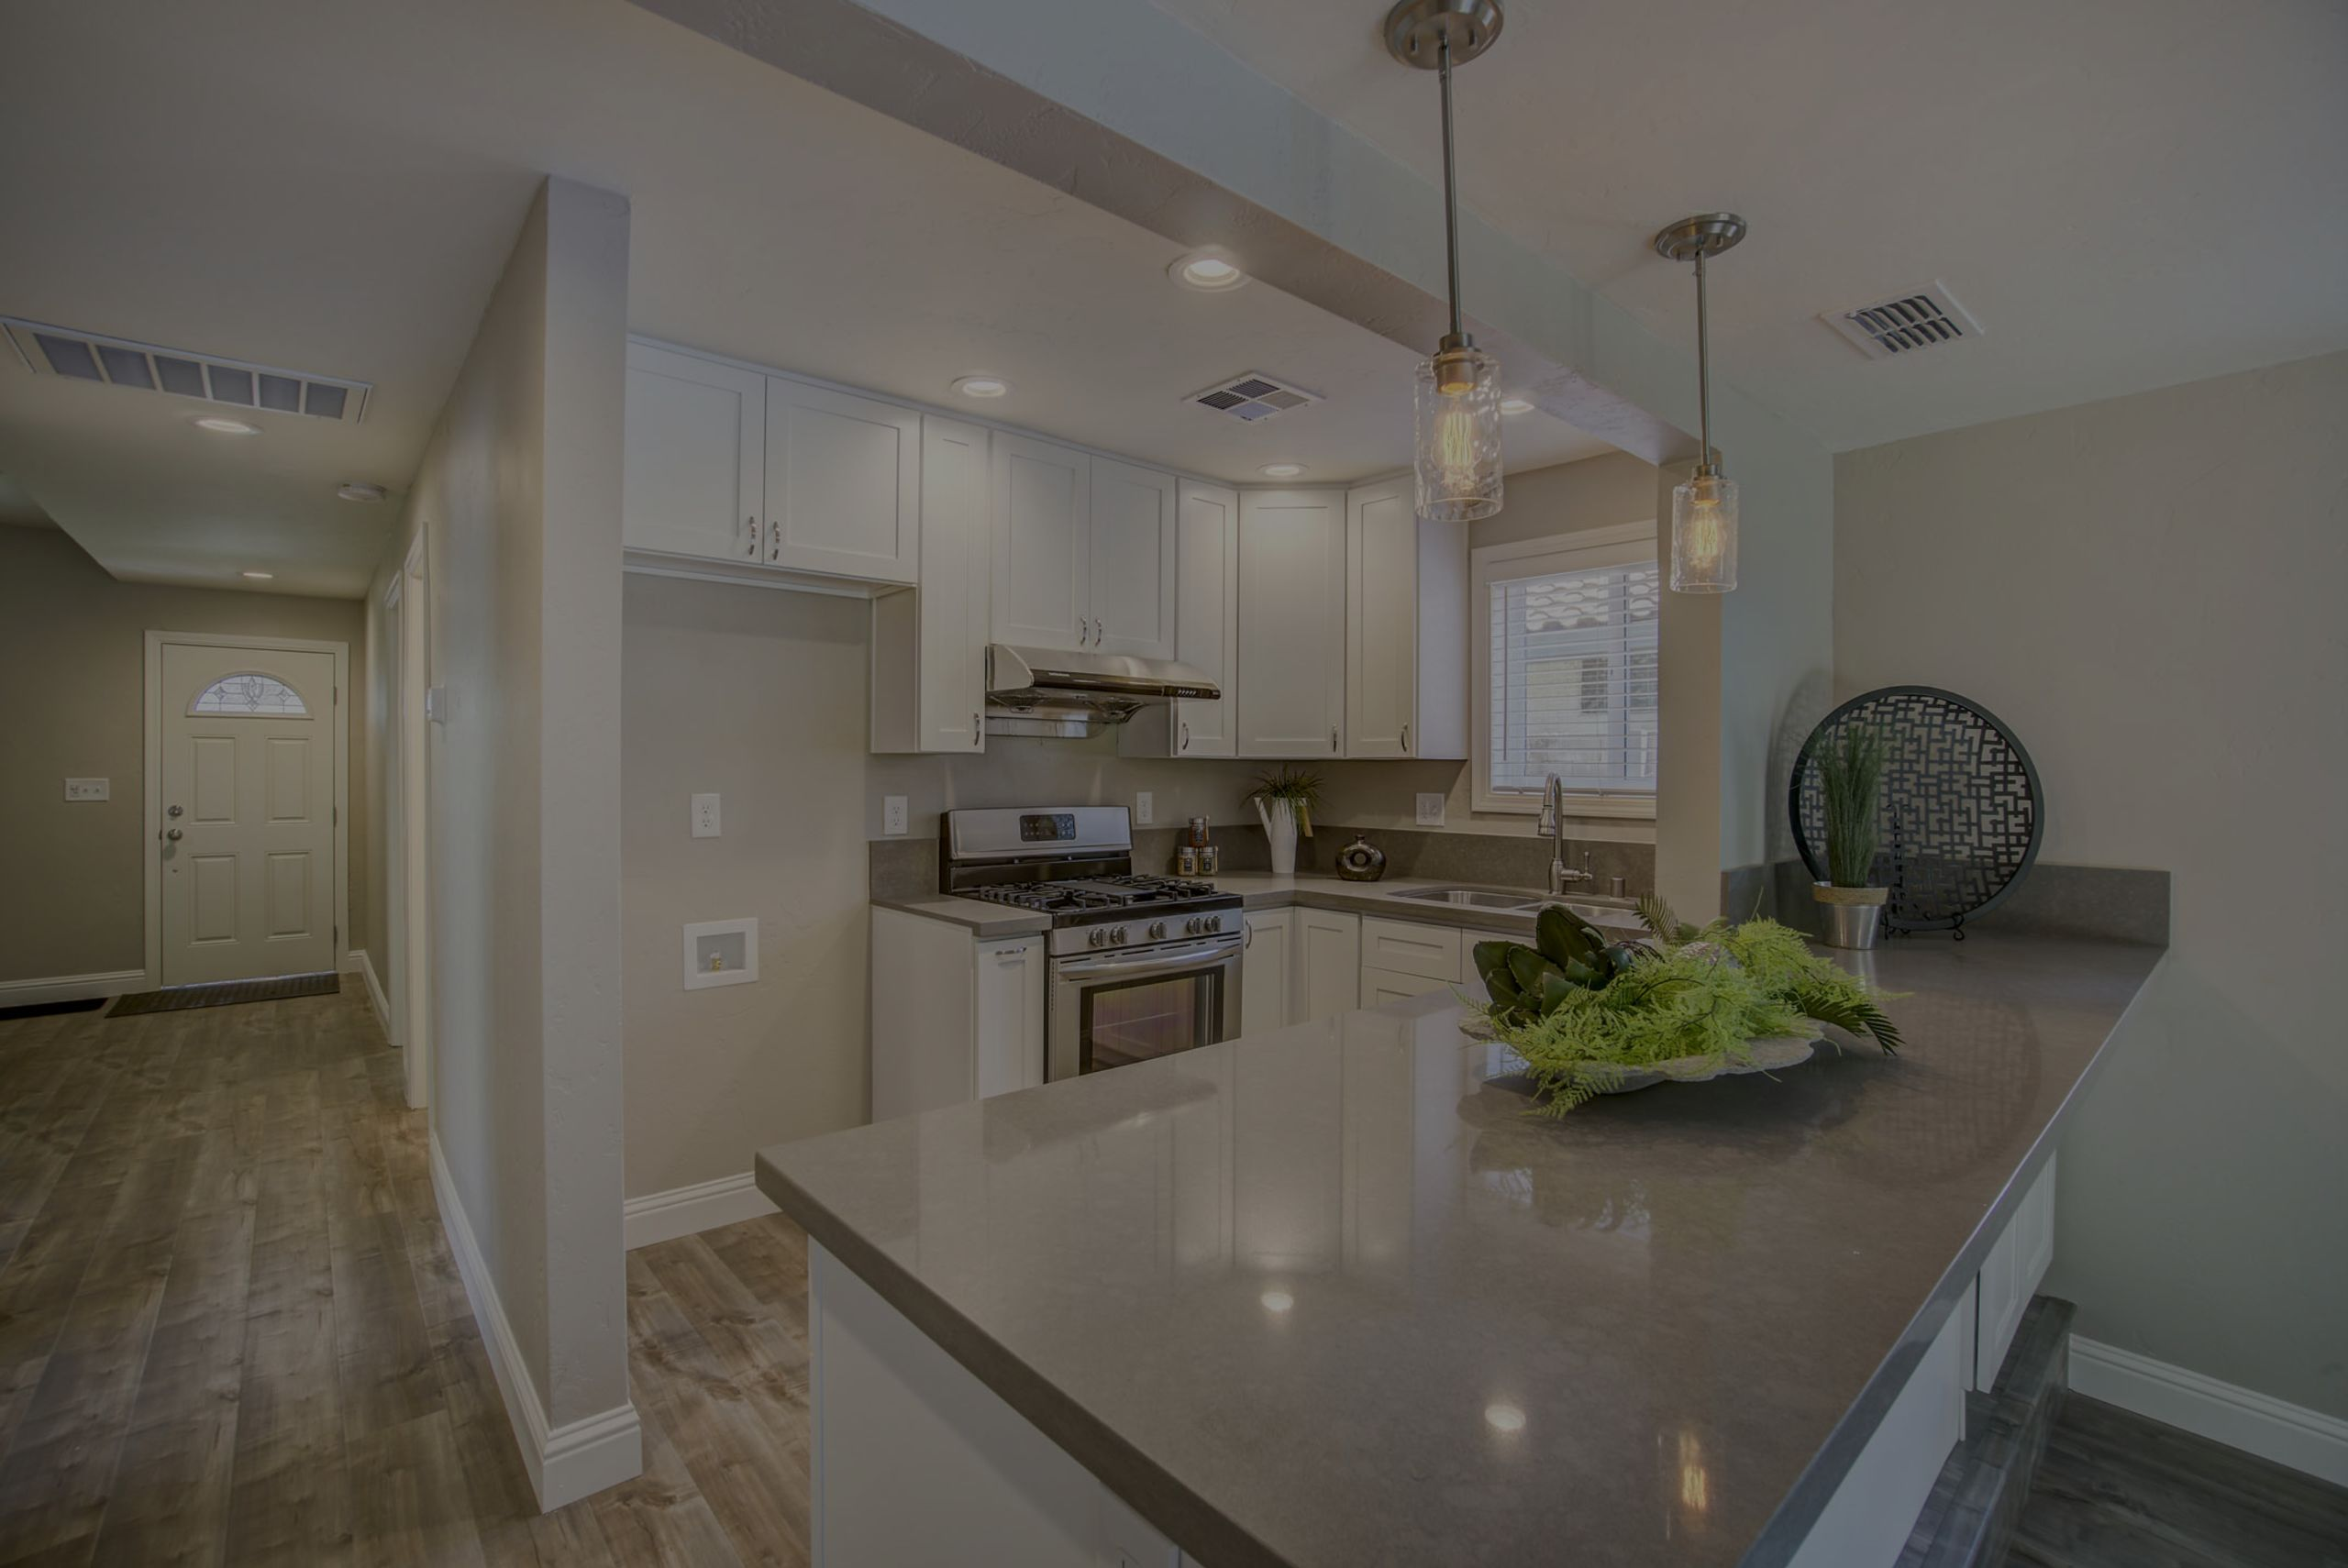 Smooth Selling: Tips to Prepare Your Home for the Market